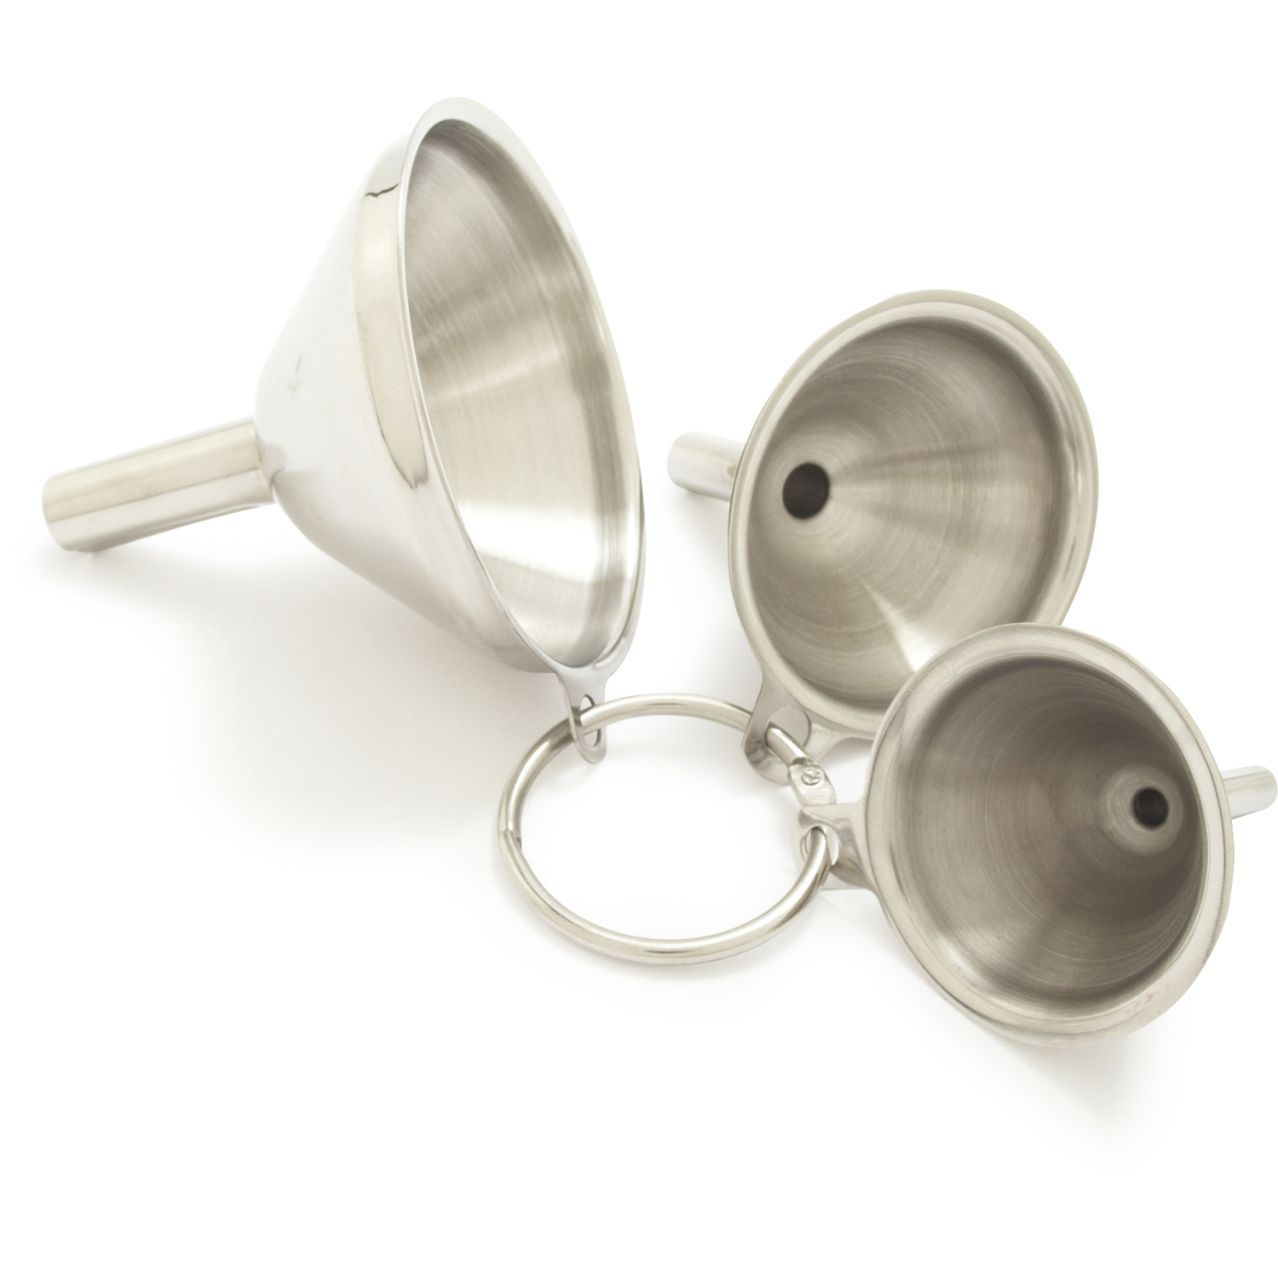 Stainless Steel Mini Funnels, Set of 3 | Stainless steel, Steel and ...